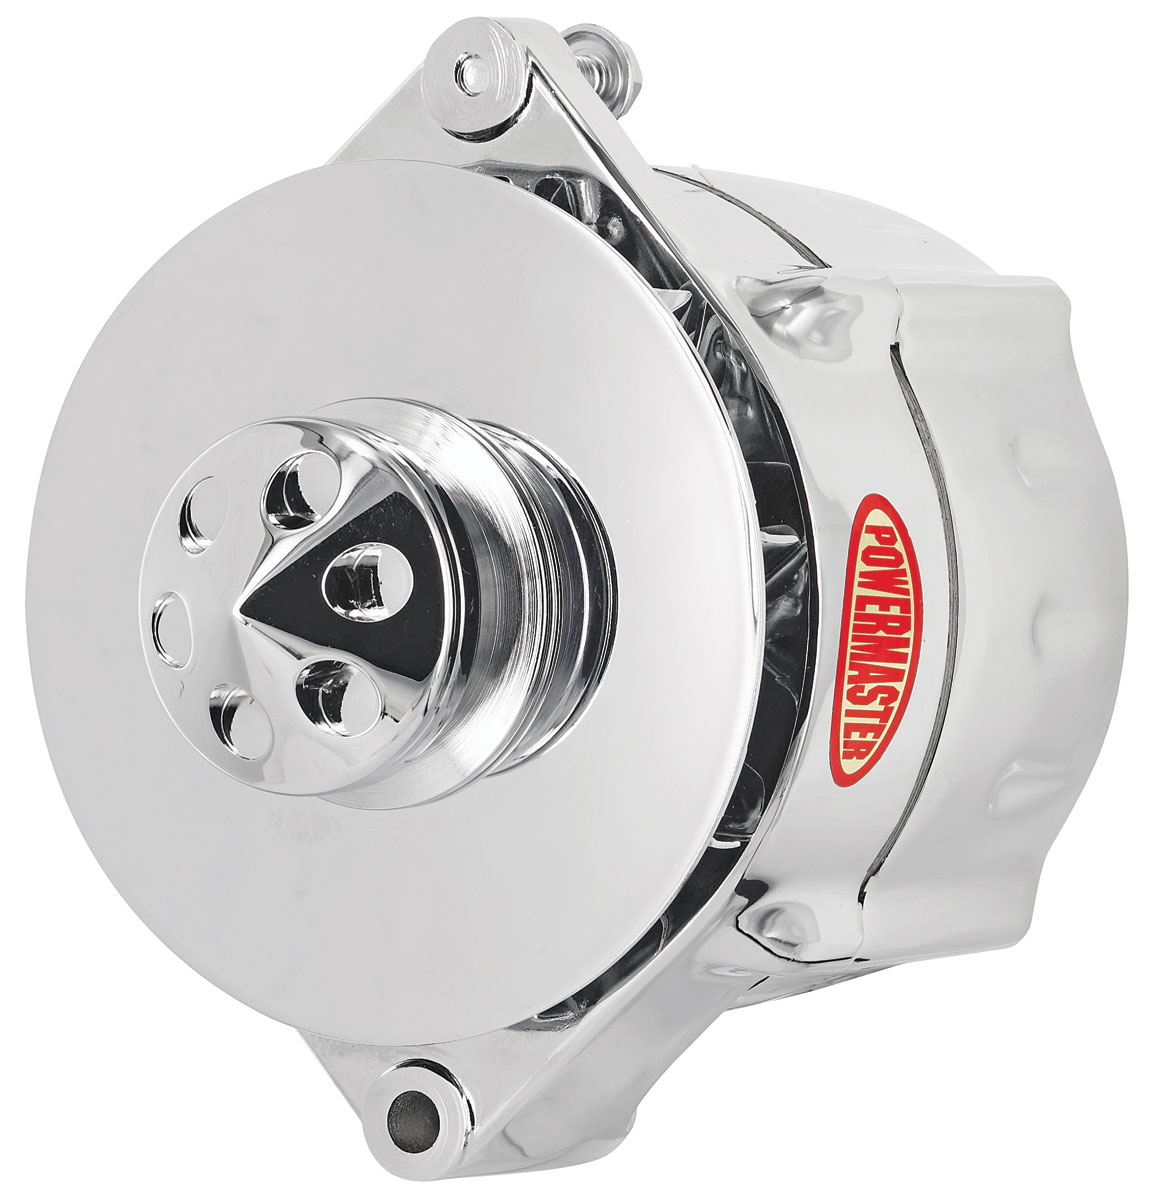 Photo of Alternator, Smooth Look 6-Groove Serpentine Pulley chrome, 150-amp